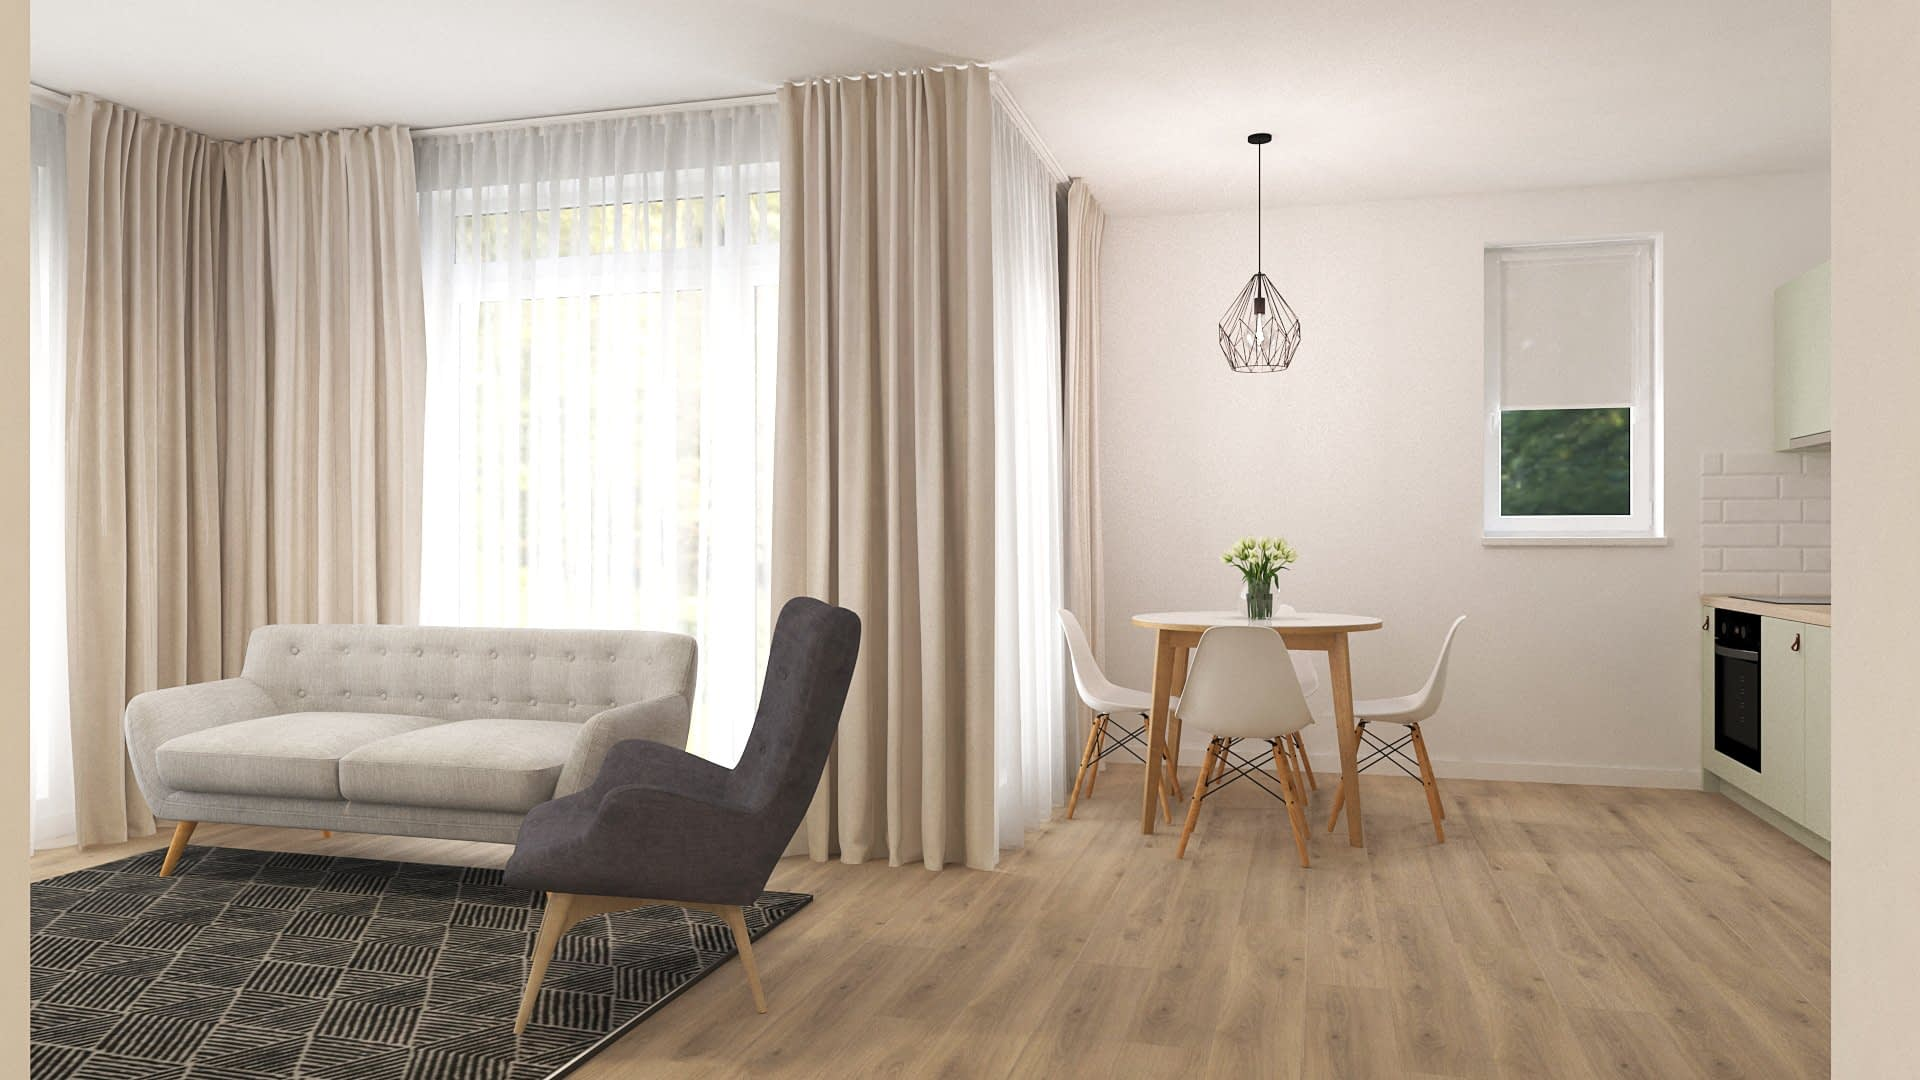 Pistachio | Apartment Design 03